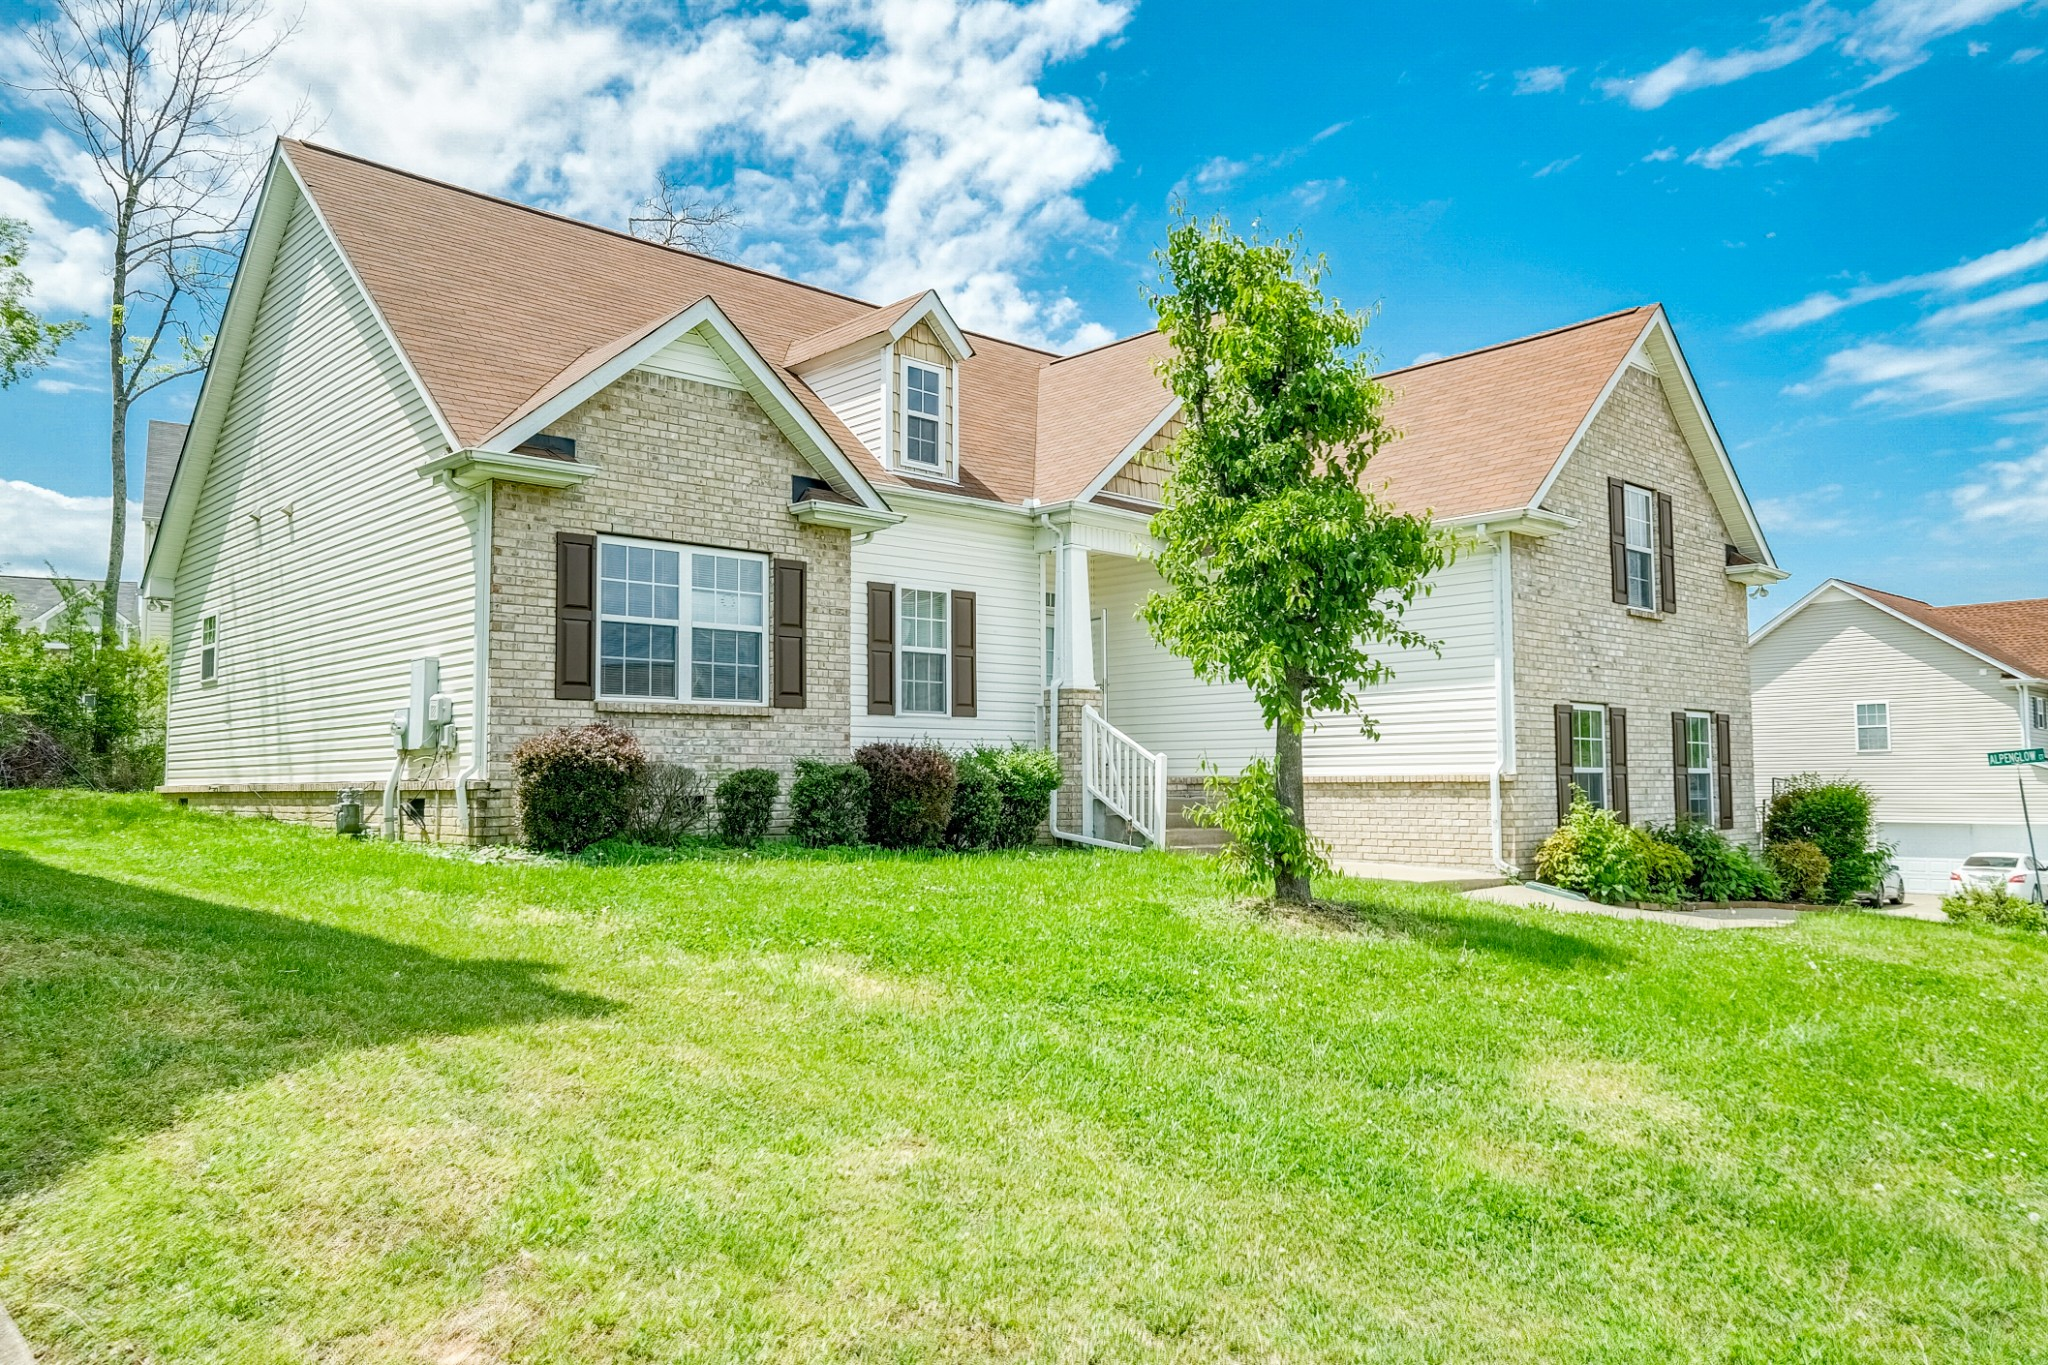 4080 Pineorchard Pl, Nashville-Antioch in Davidson County, TN County, TN 37013 Home for Sale